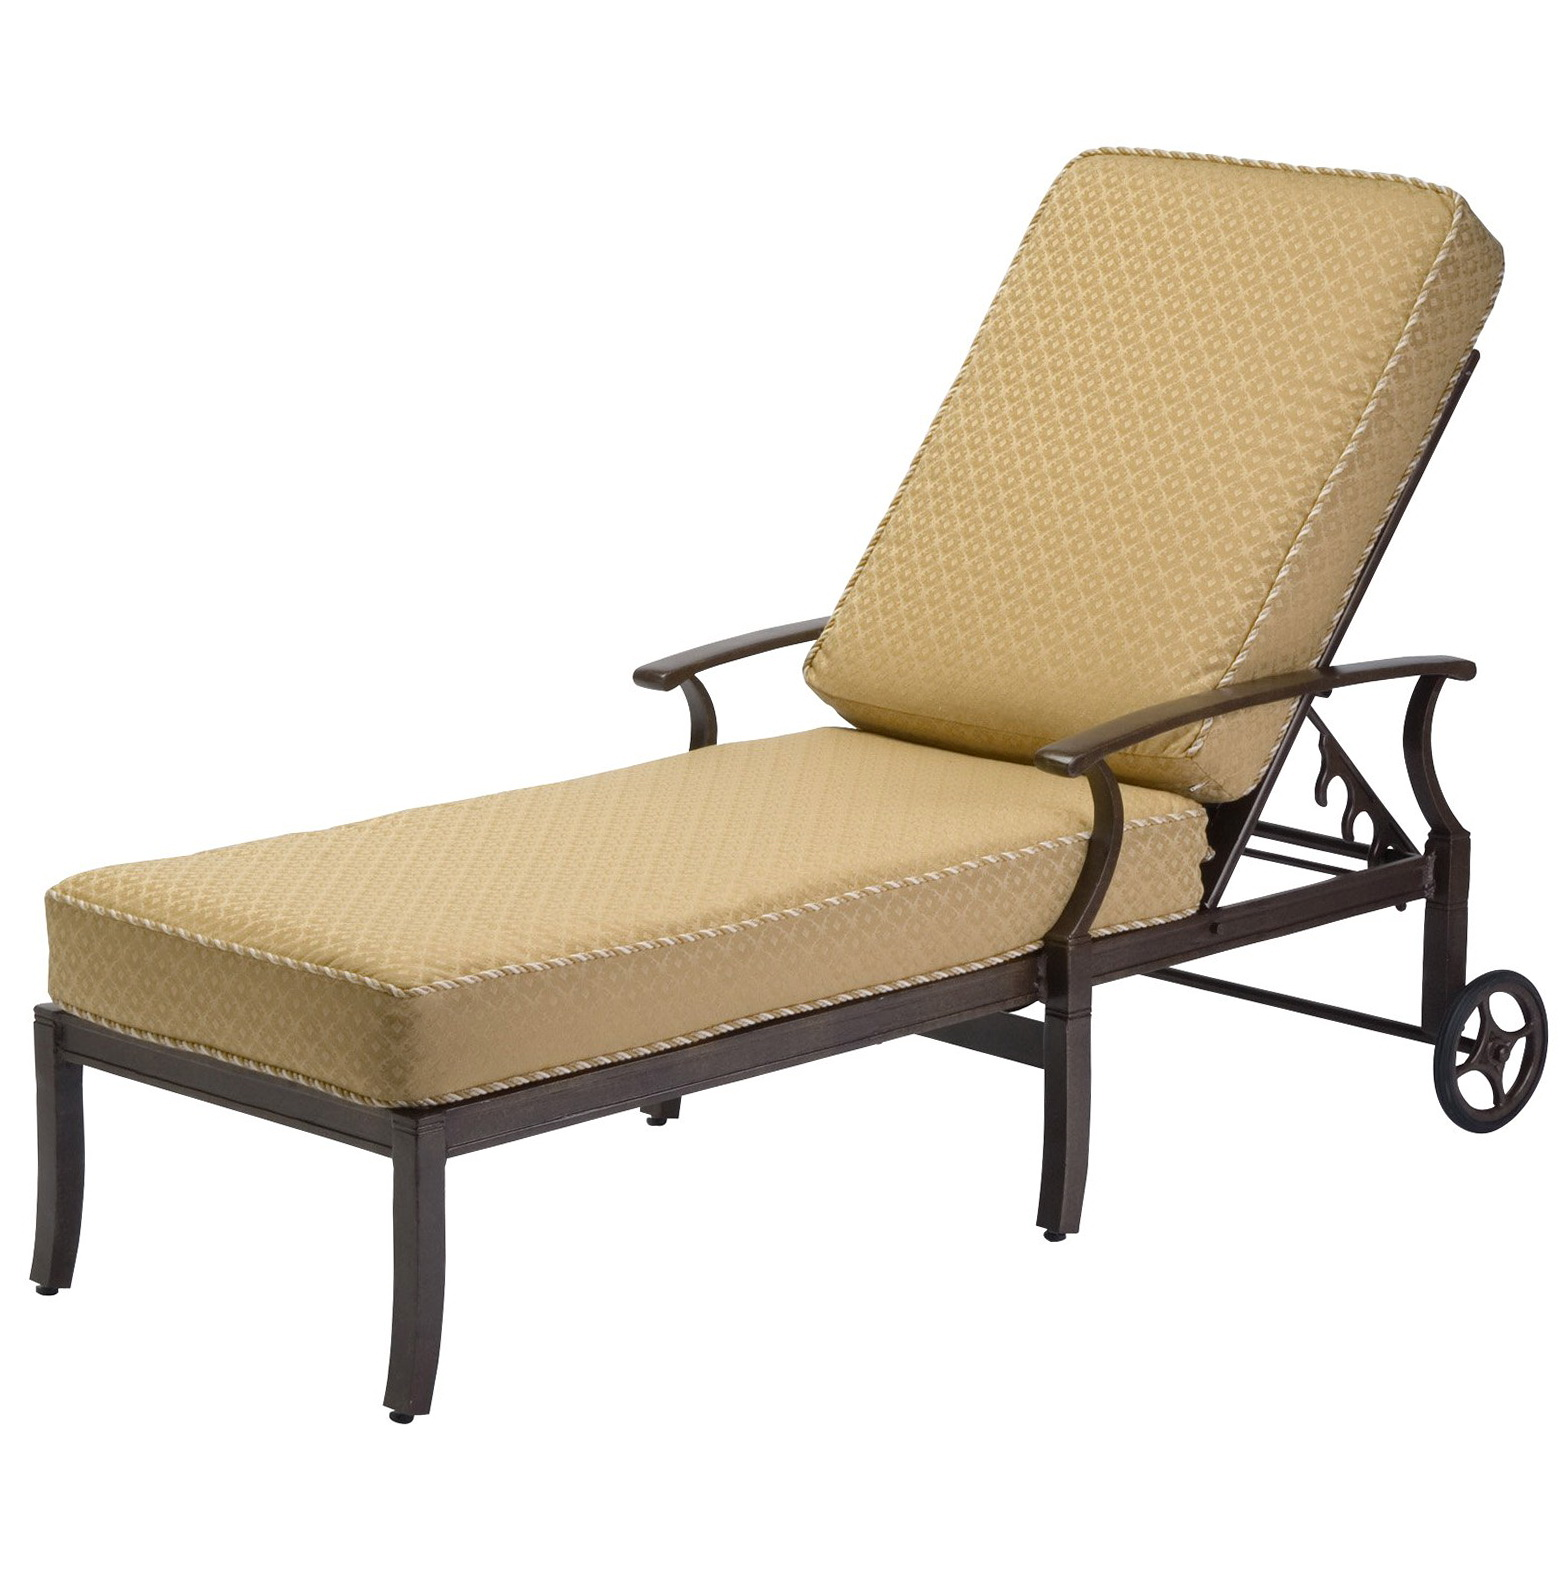 Outdoor chaise lounge cushions canada home design ideas for Chaise longue cushions